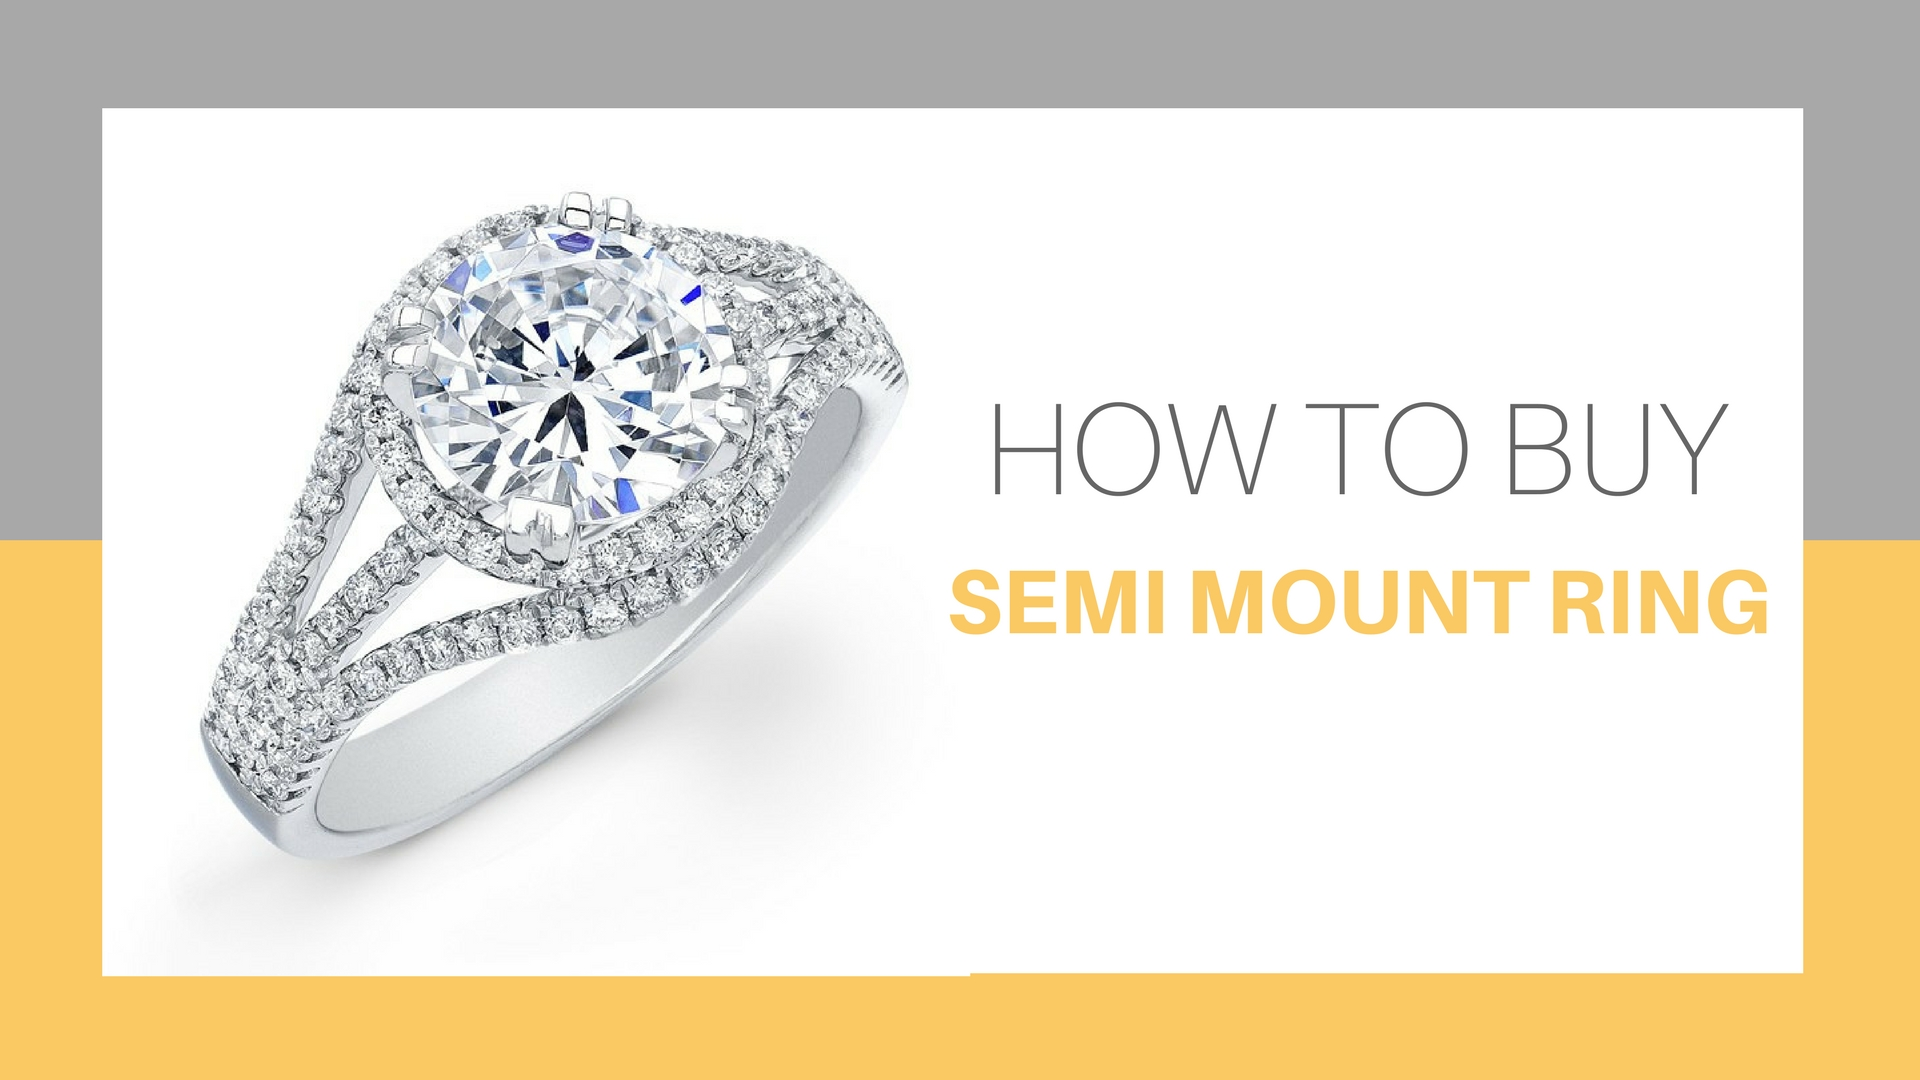 How To Buy Semi Mount Ring For Engagement - Dazzling Rock